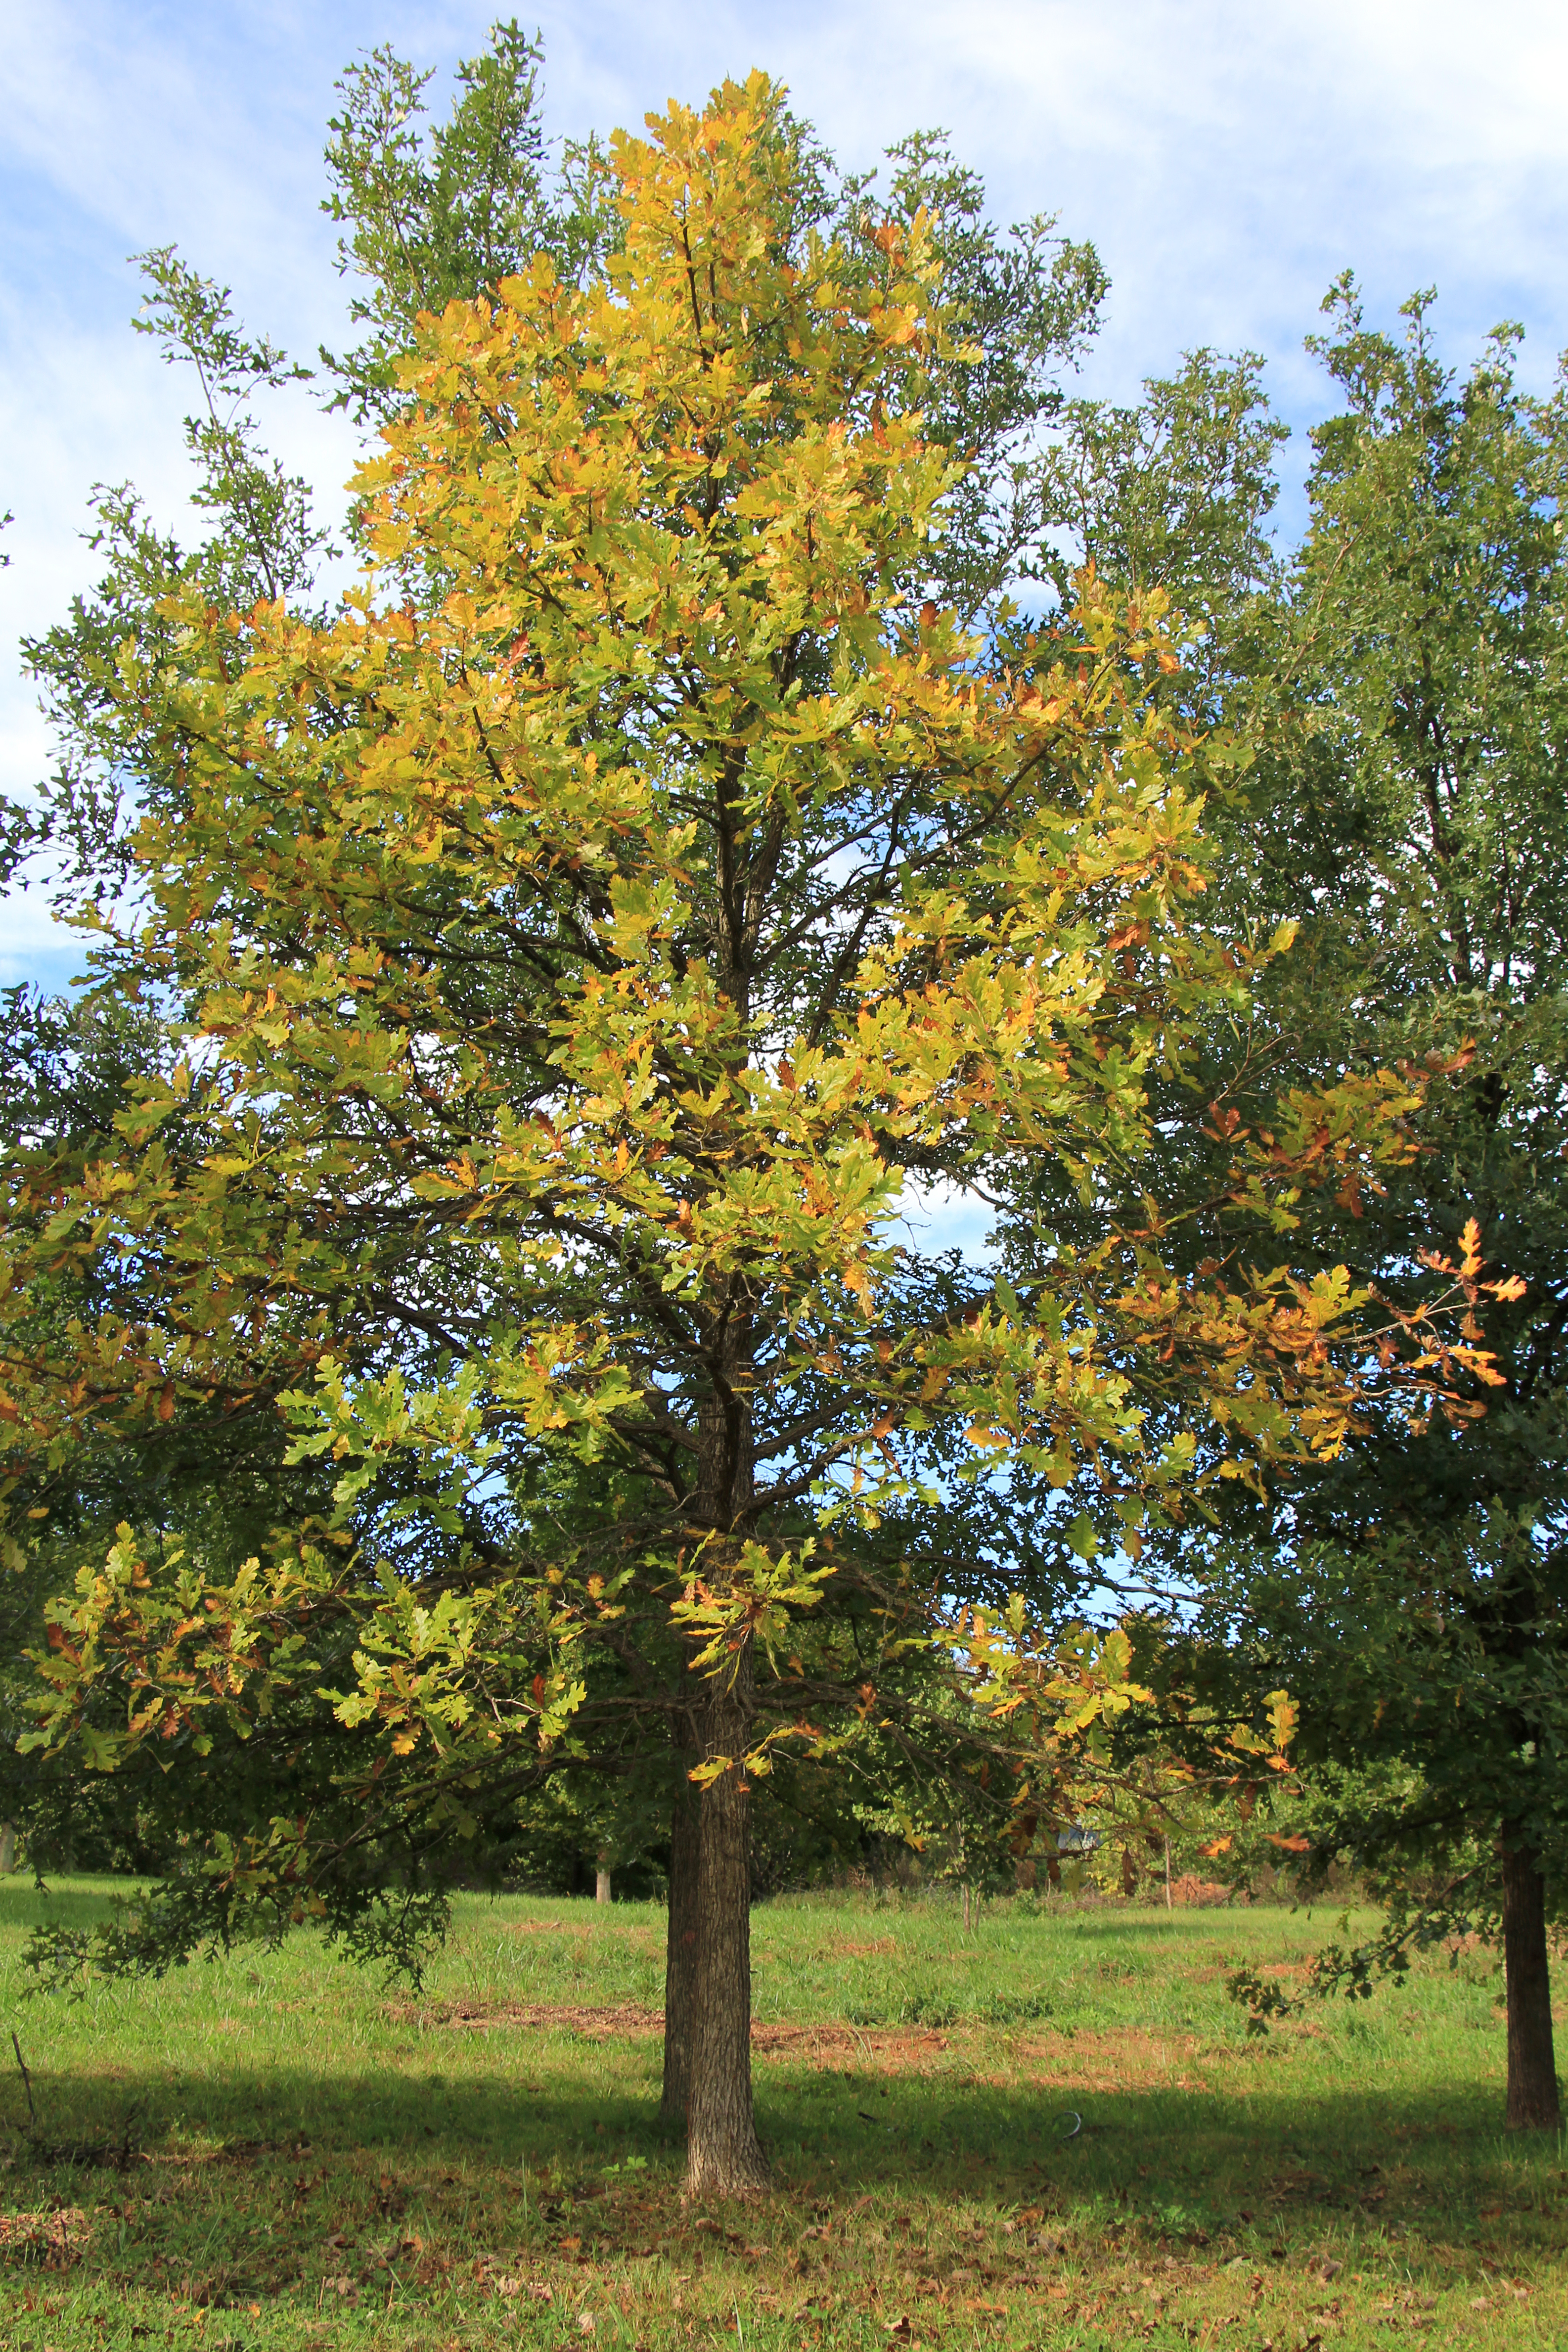 Rousing Burr Oak Entire Tree Fall Color Shade Tree Burr Oak Shade Tree Farm Burr Oak Tree Leaves Burr Oak Tree Bark houzz-03 Burr Oak Tree